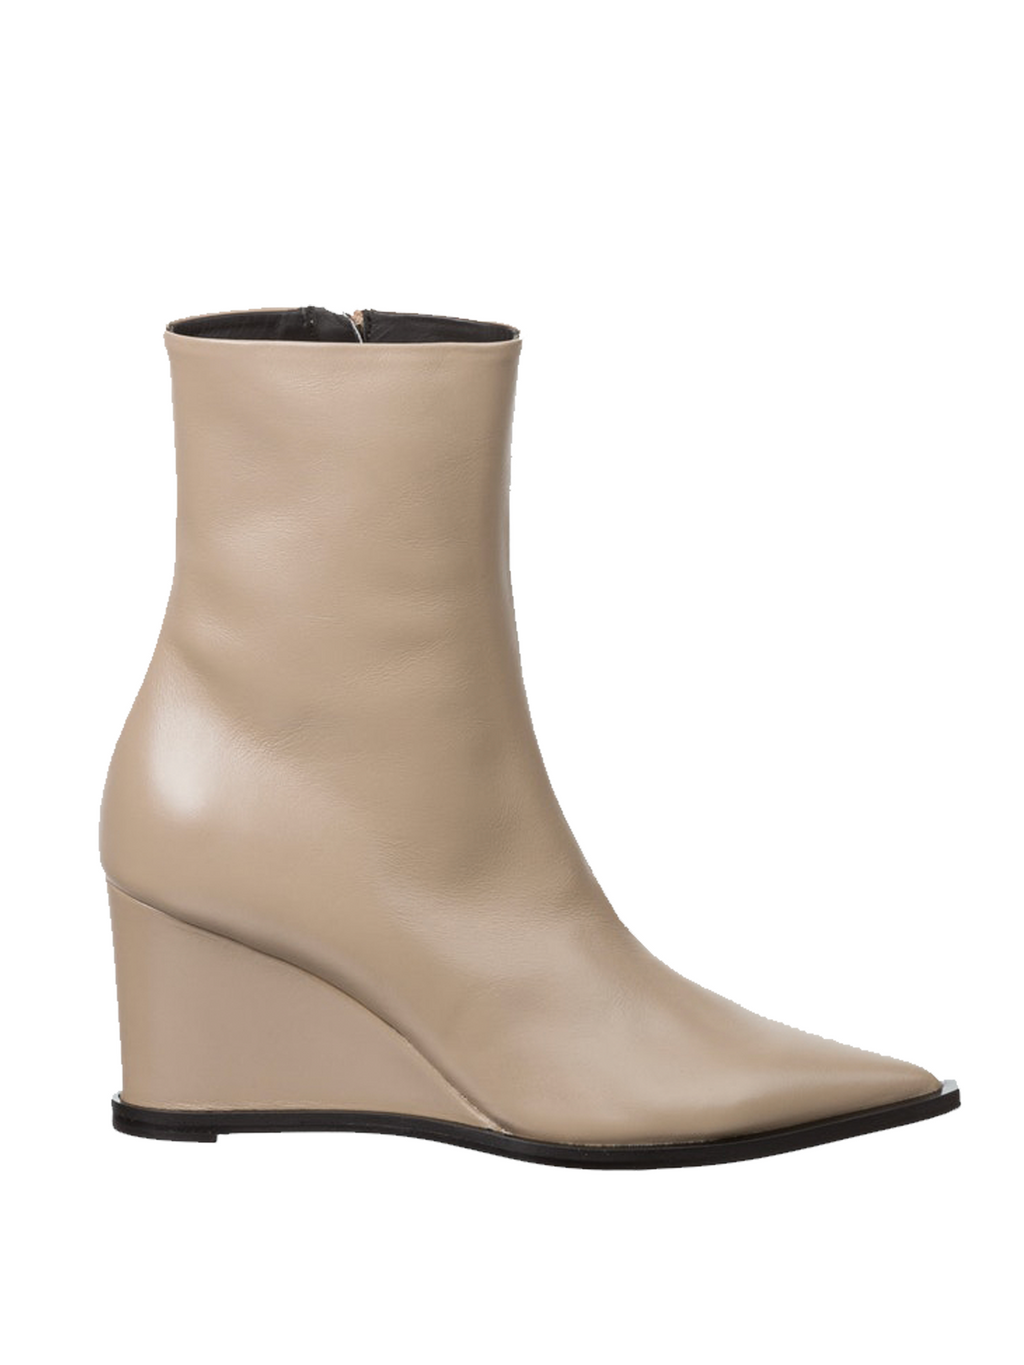 Dorothee Schumacher Sophisticated Chic Bootie